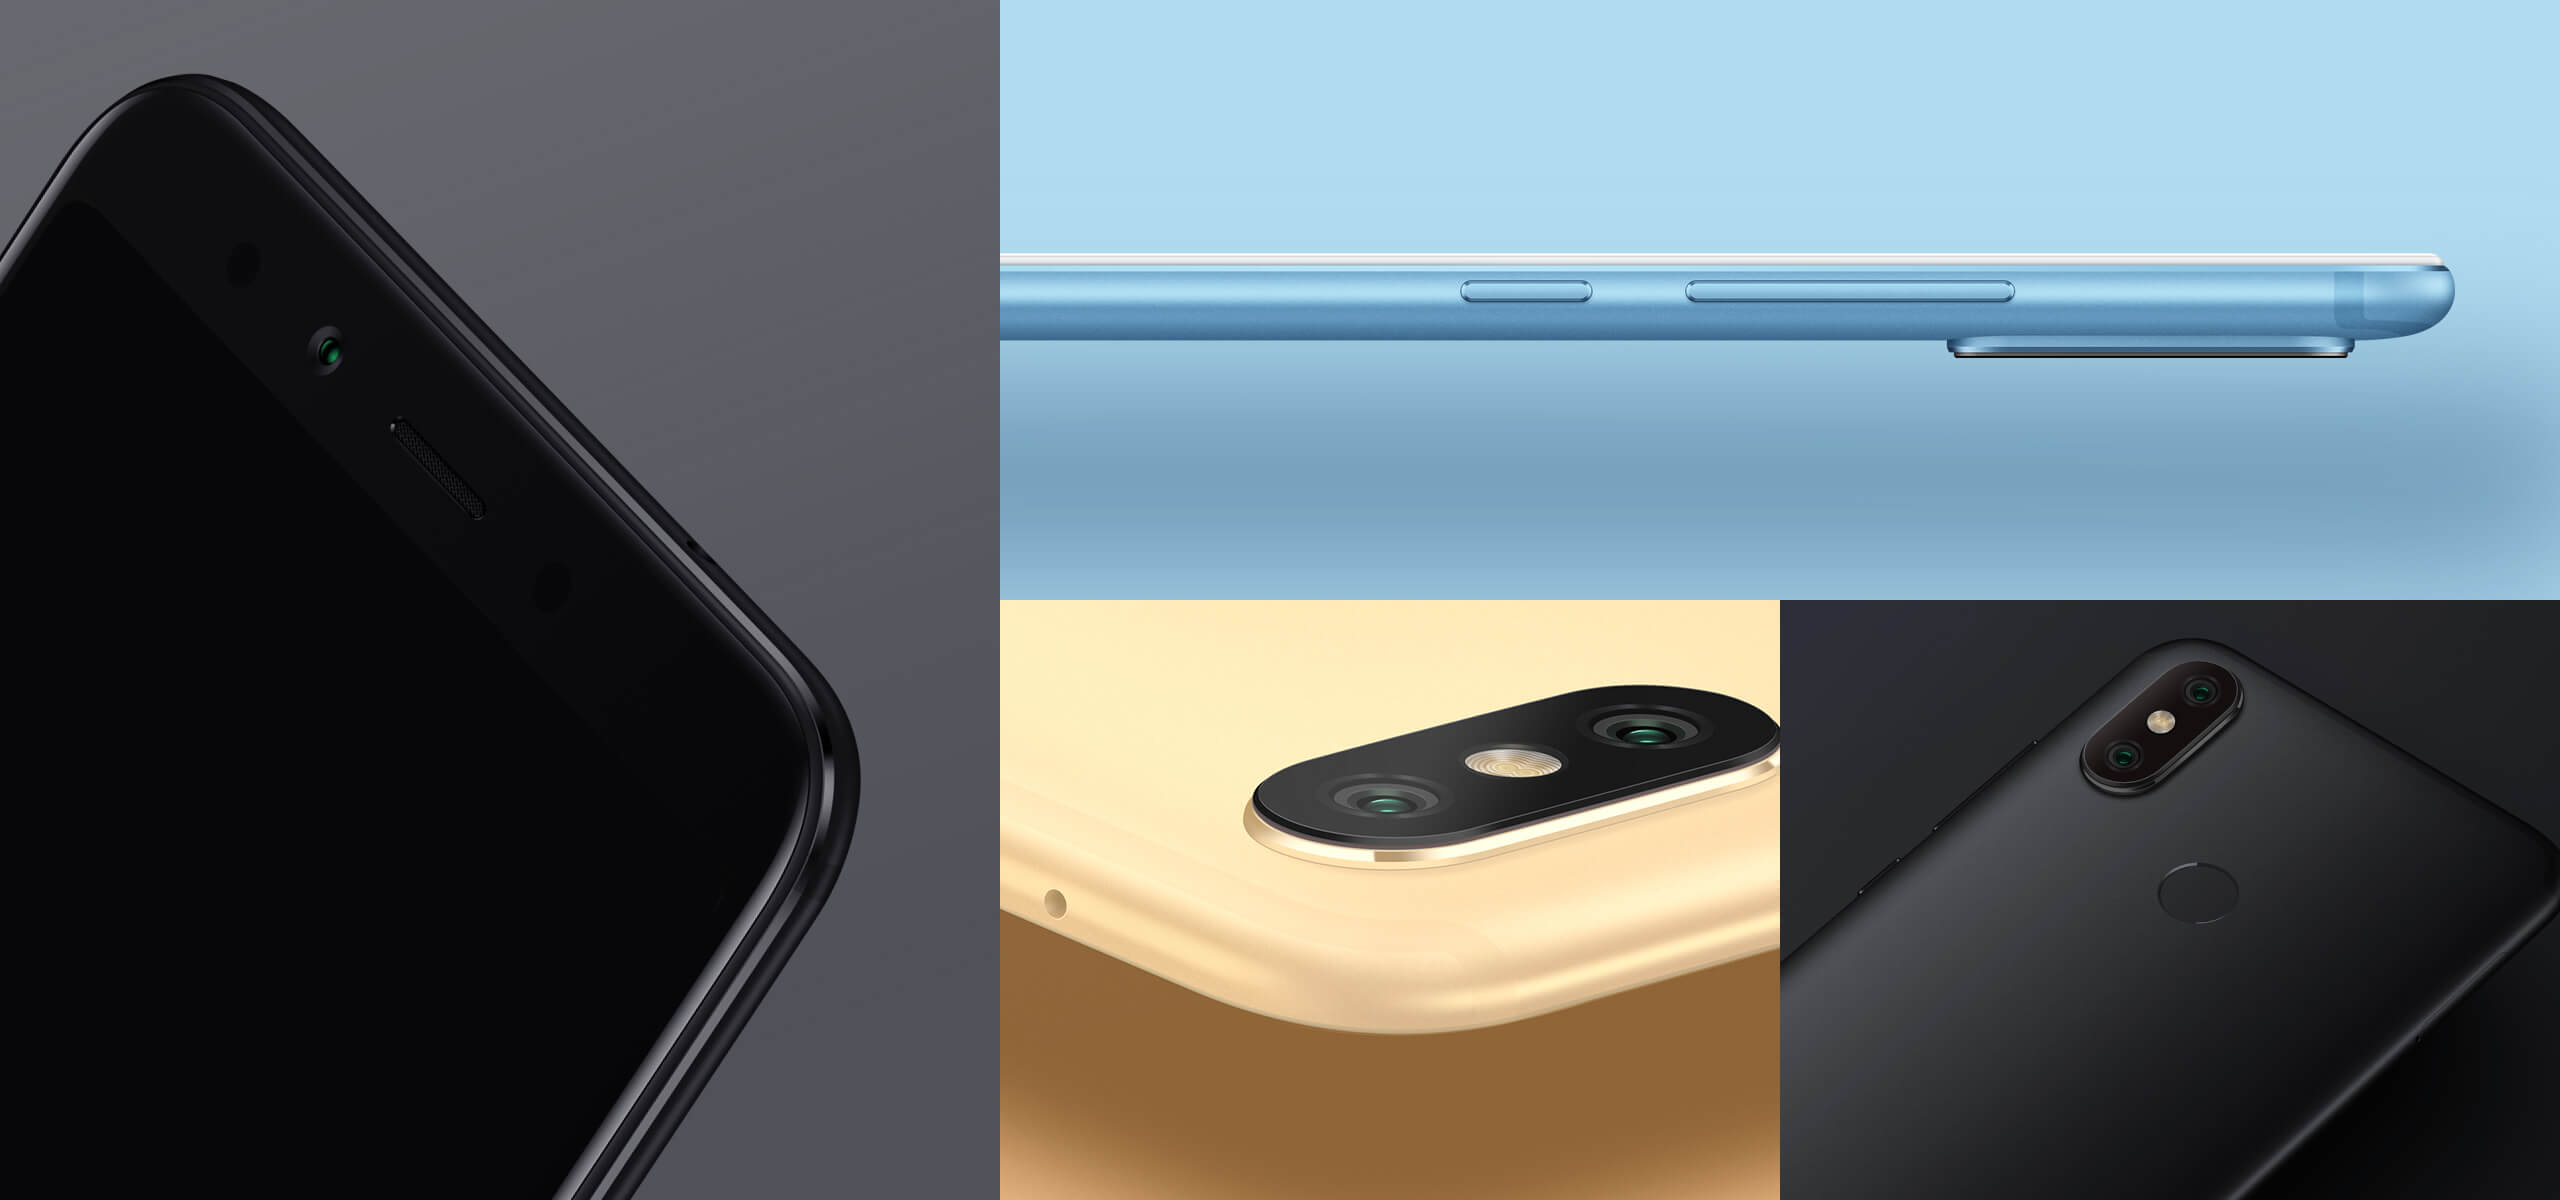 Xiaomi Mi A2 and Mi A2 Lite are now official - Here's all you need to know 13